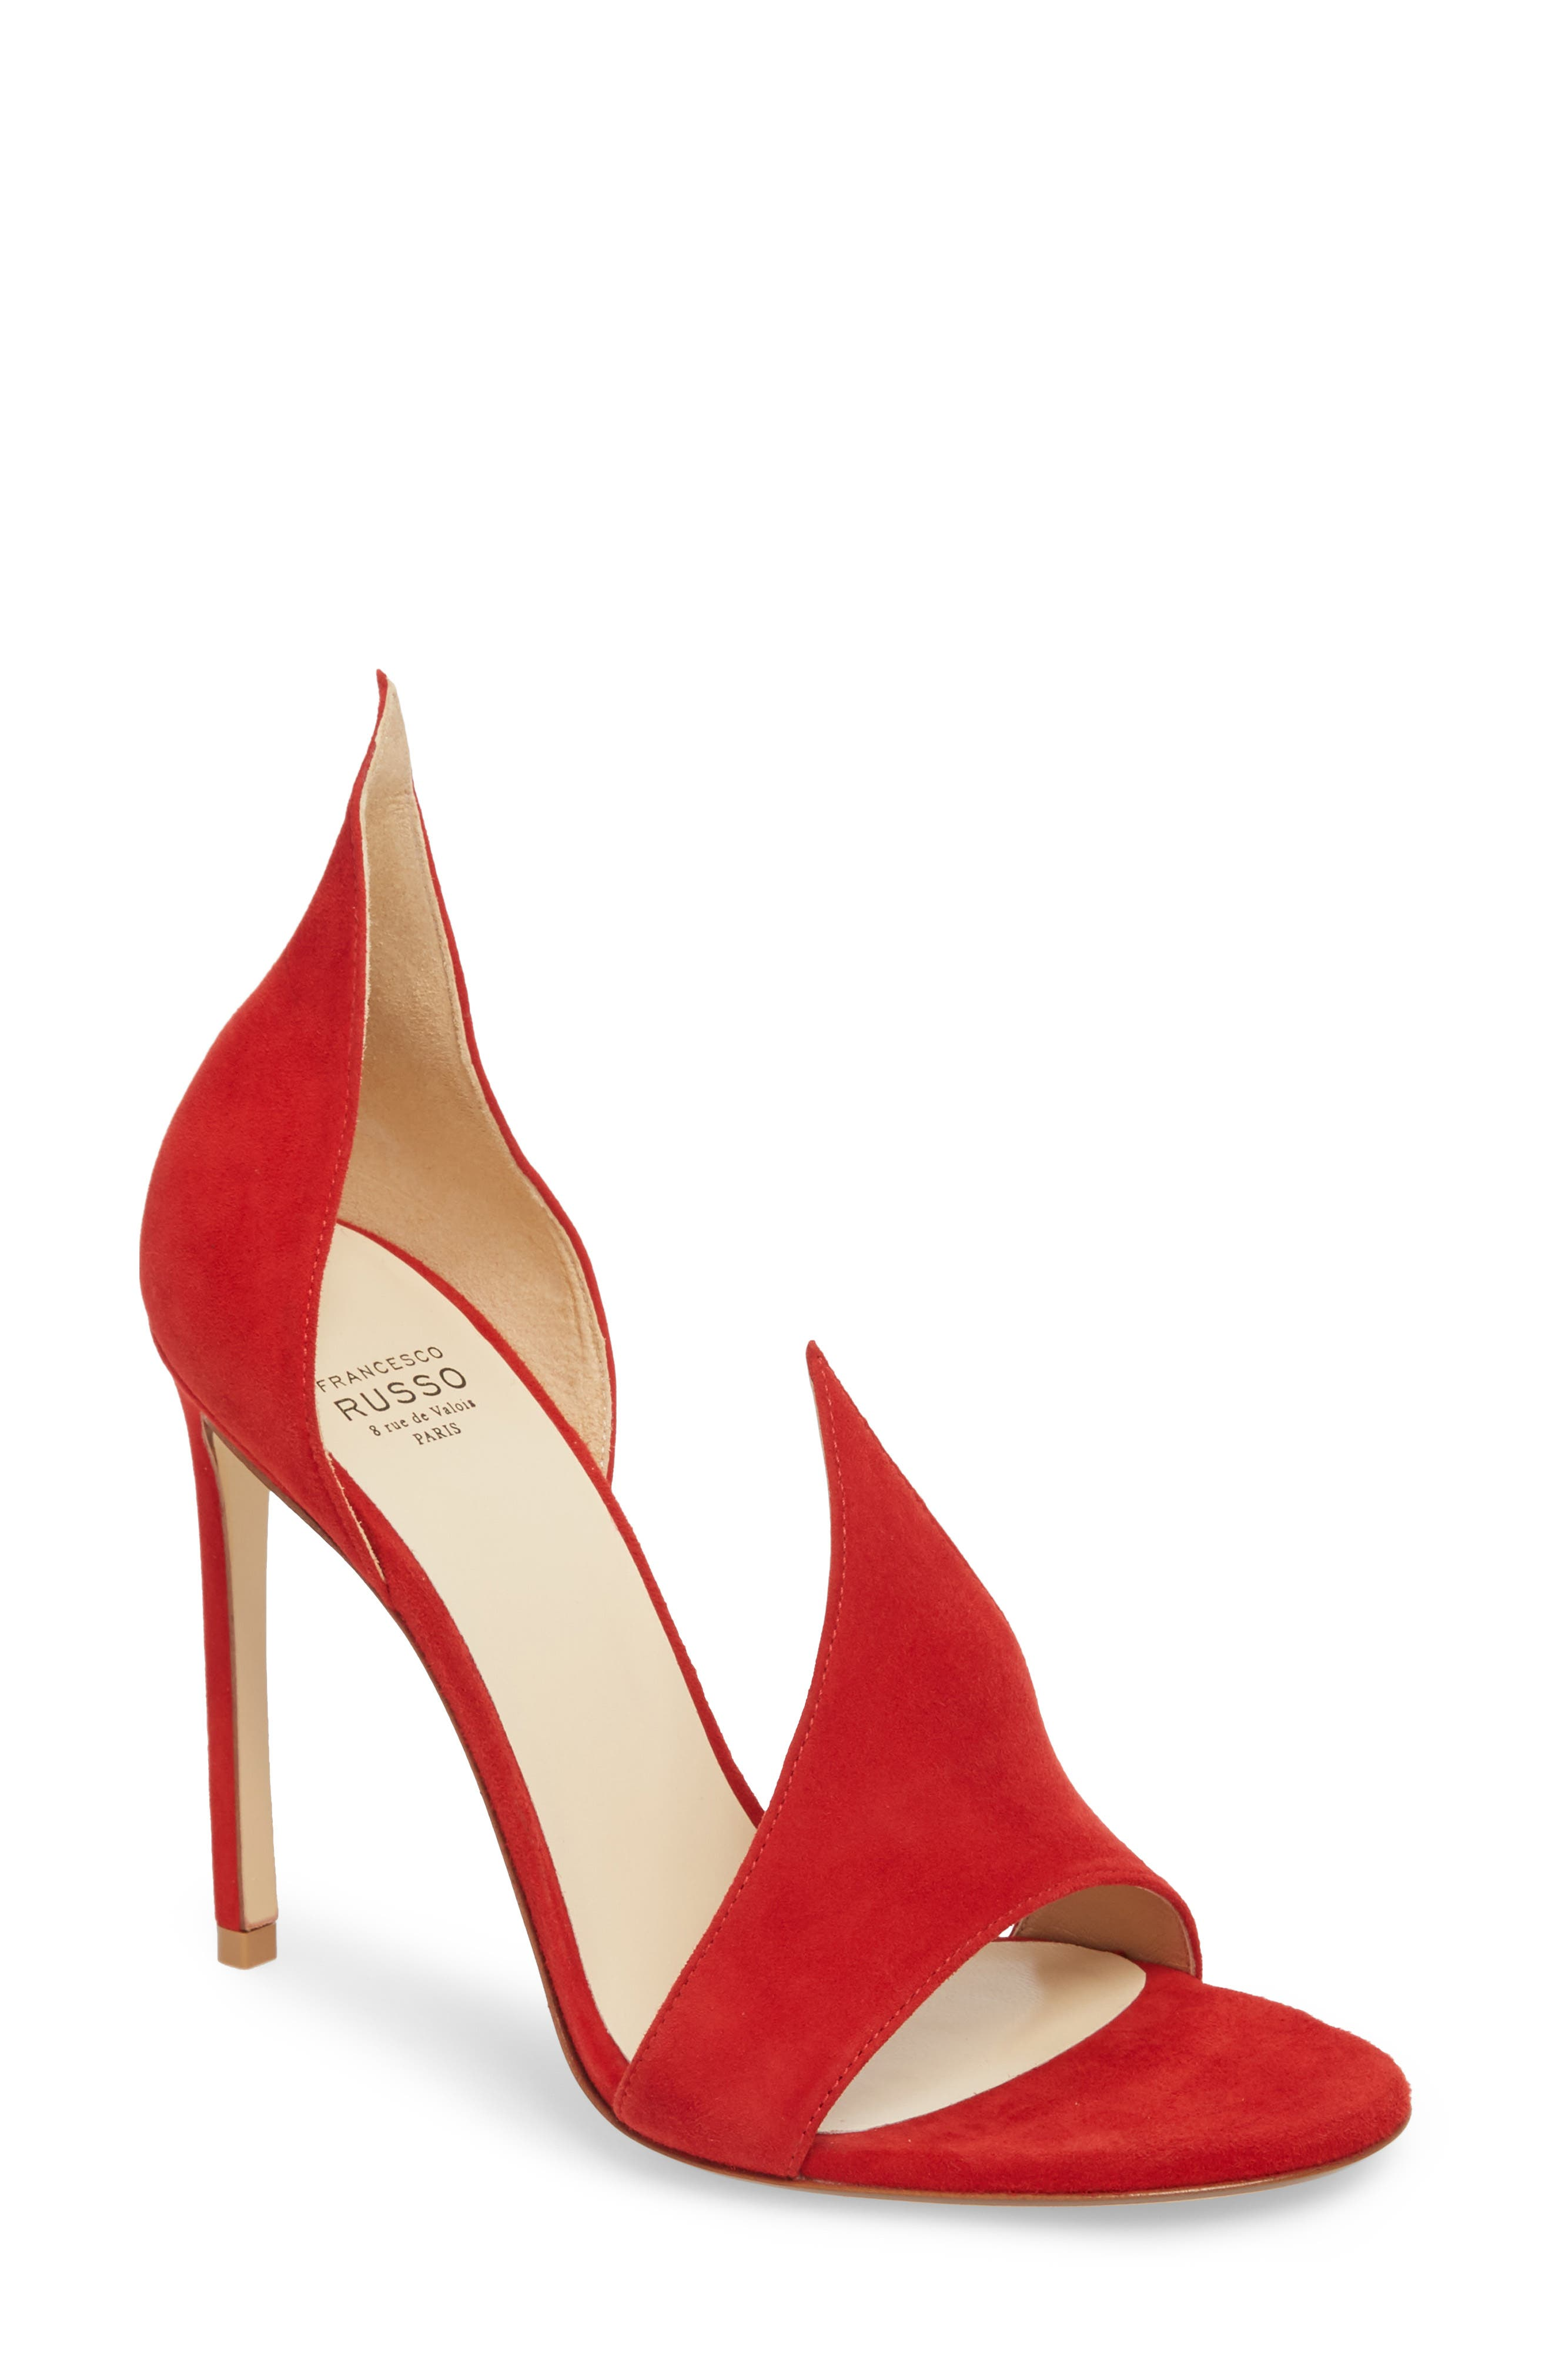 Flame Sandal,                             Main thumbnail 1, color,                             Red Suede